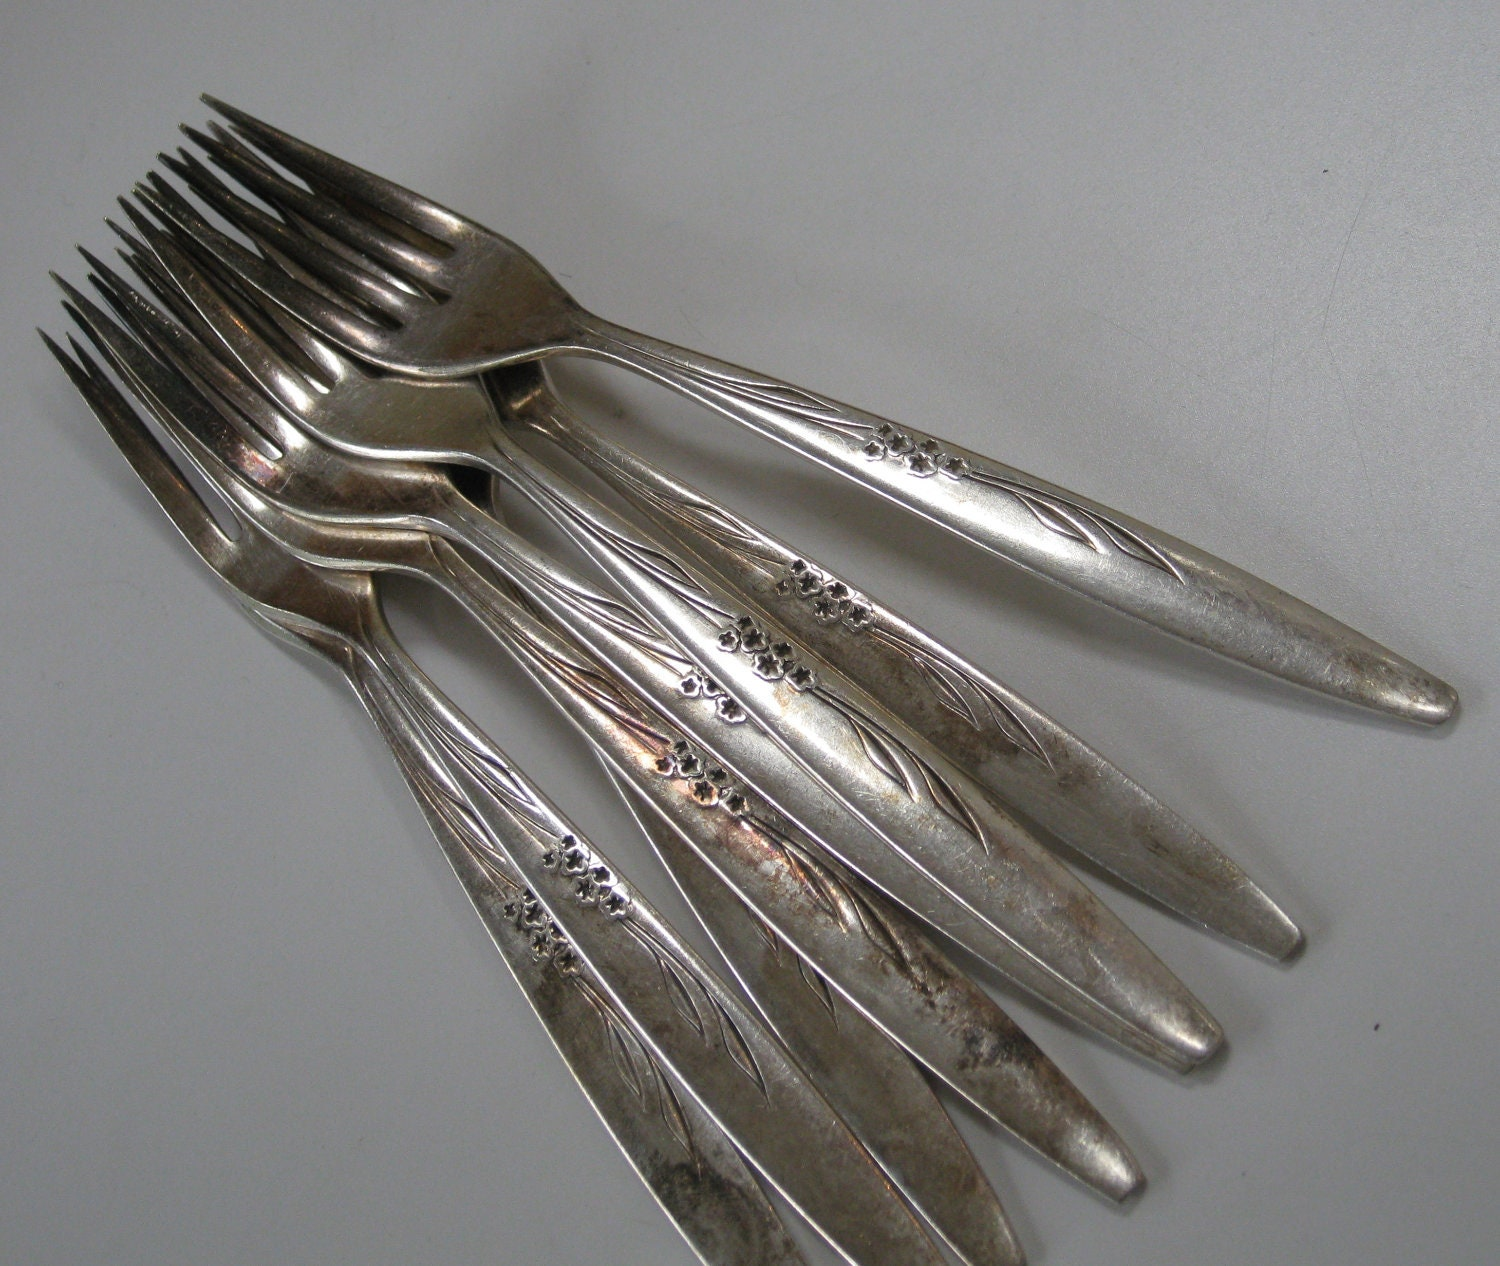 Vintage Oneida Community Silverplate Flatware 8 Forks And 9